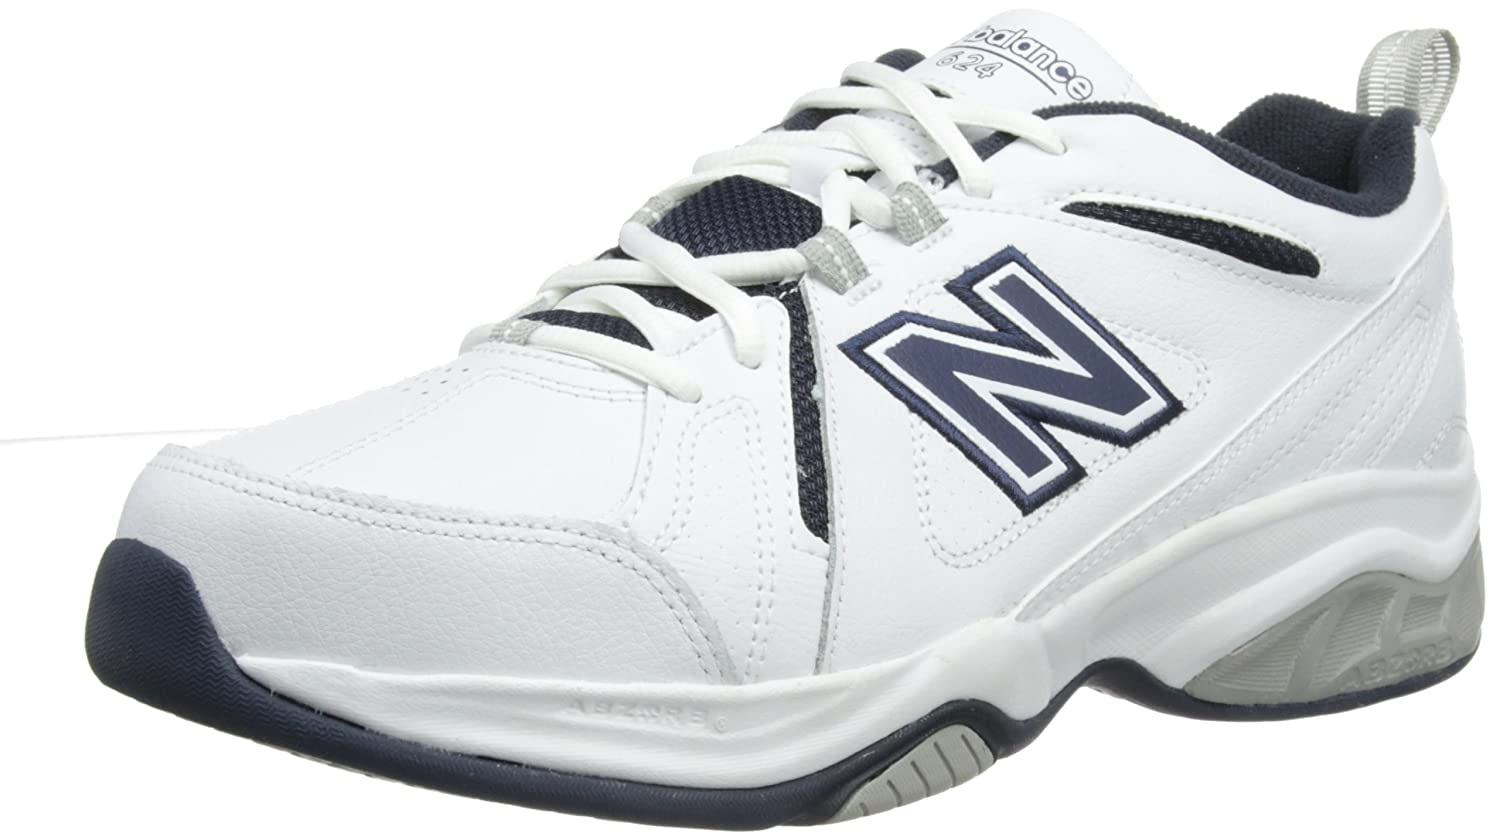 New Balance MX624WN3 Men/'s Extra Wide 6E Fitting Cross-Training White Shoes